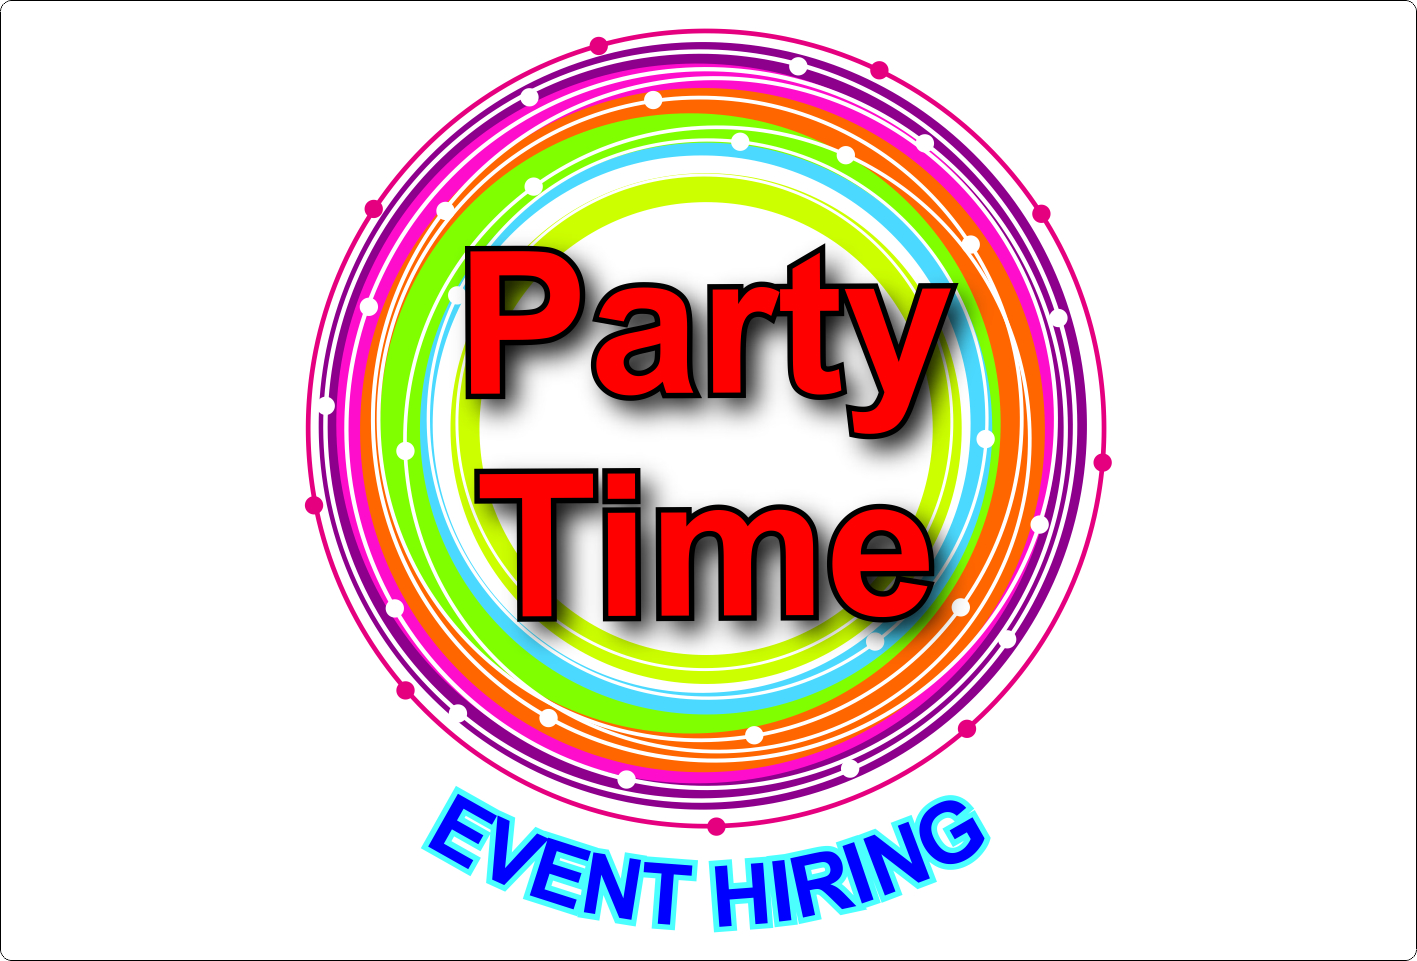 Party Time Party Time Event Hiring Western Cape Catalog